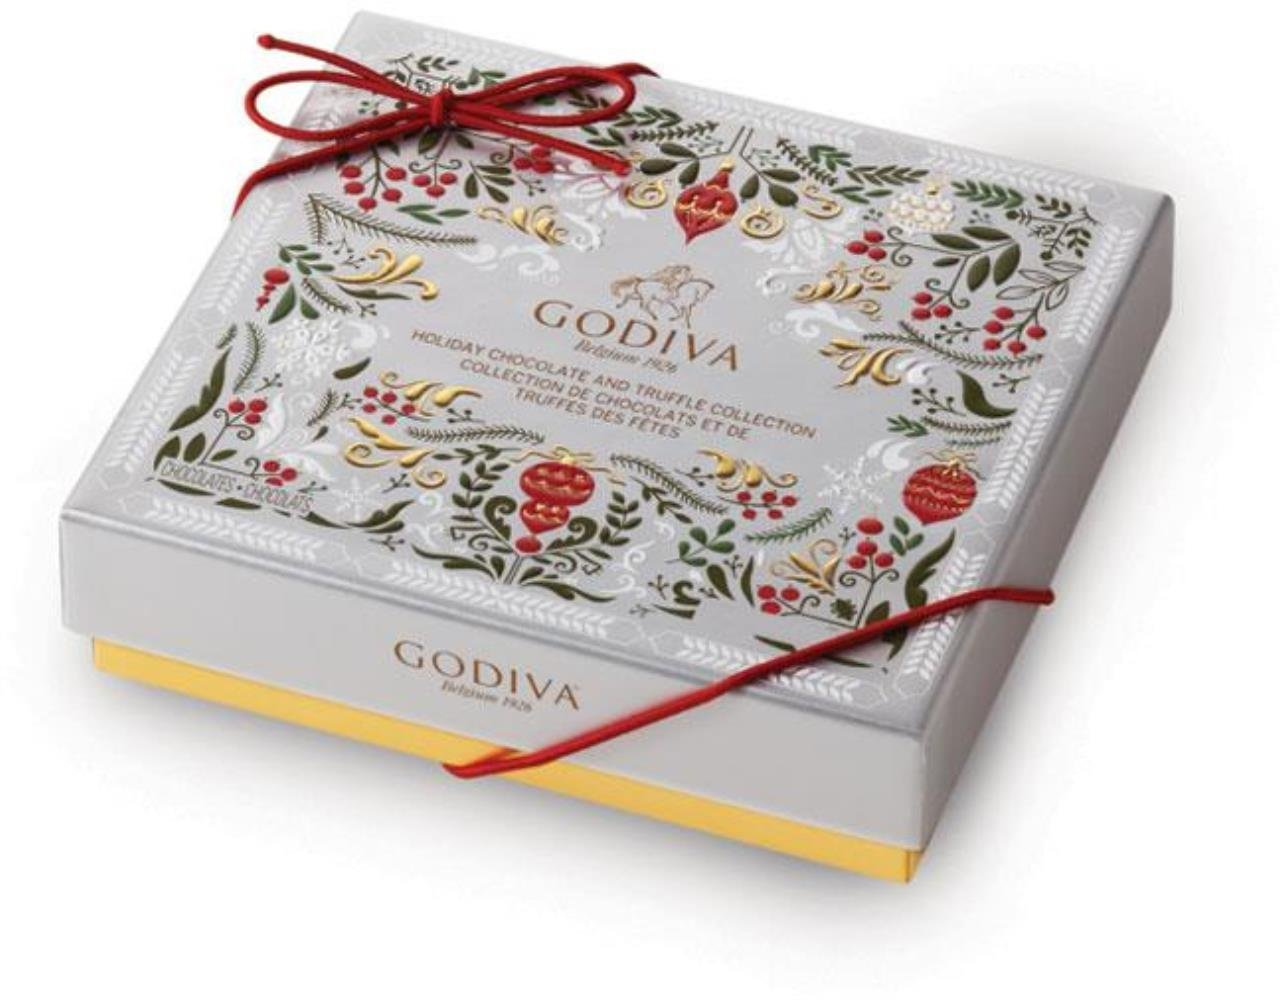 Amazon.com : Godiva Chocolate 2016 Holiday Chocolate and Truffle Box ...